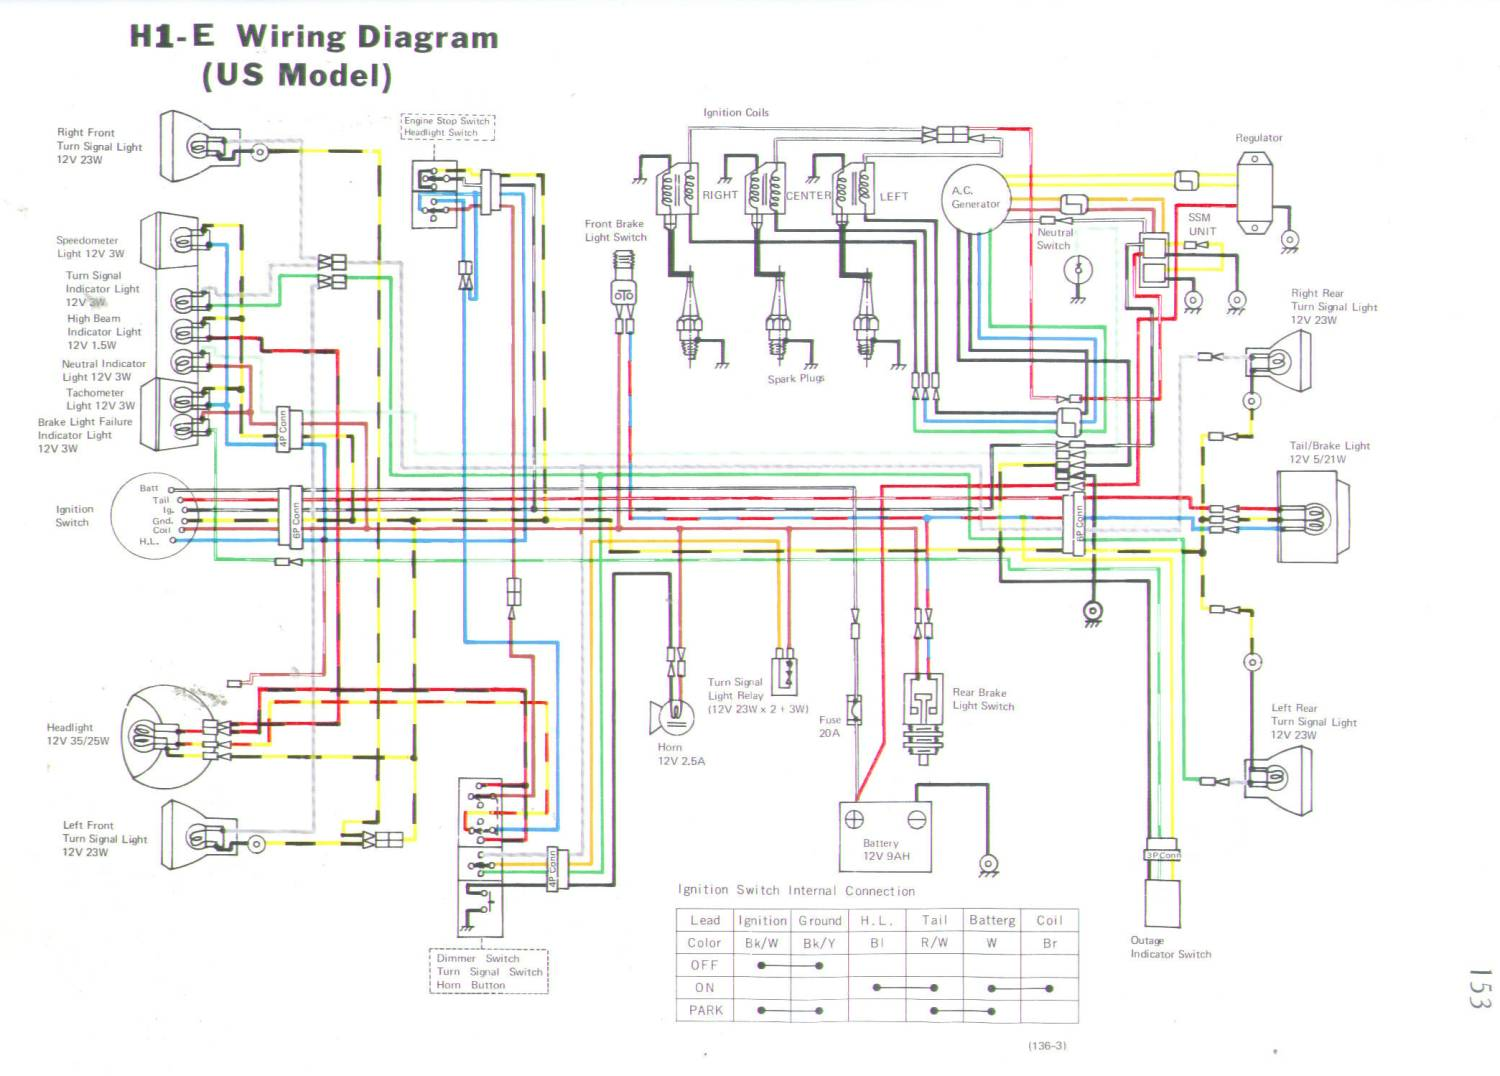 H1 wiring diagram wiring diagrams schematics h1 wiring diagram asfbconference2016